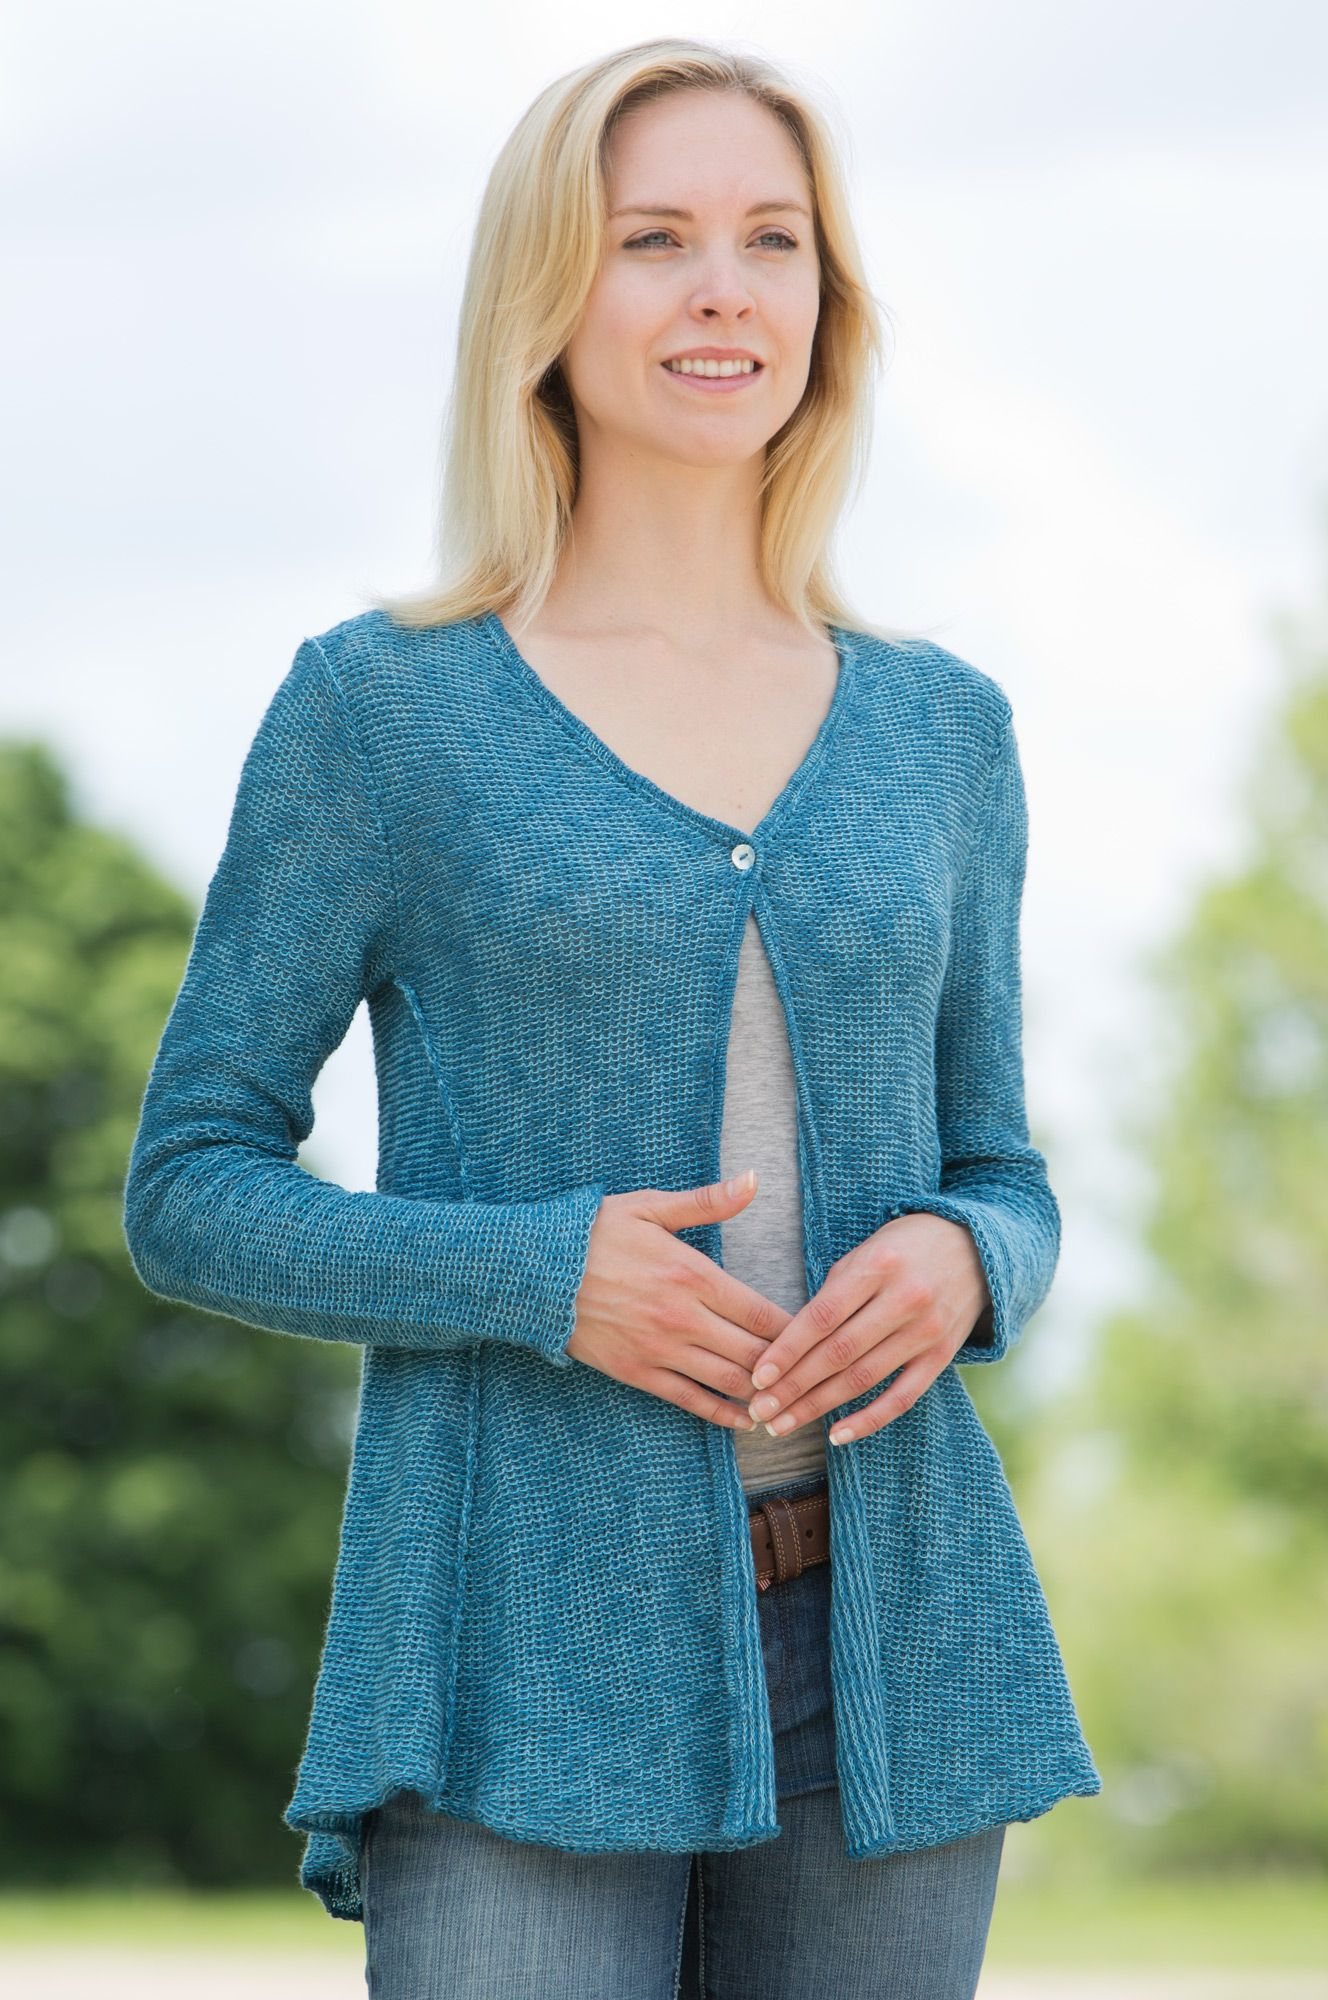 Women's Sheer Organic Cotton Cardigan #37895 (available in 2 ...